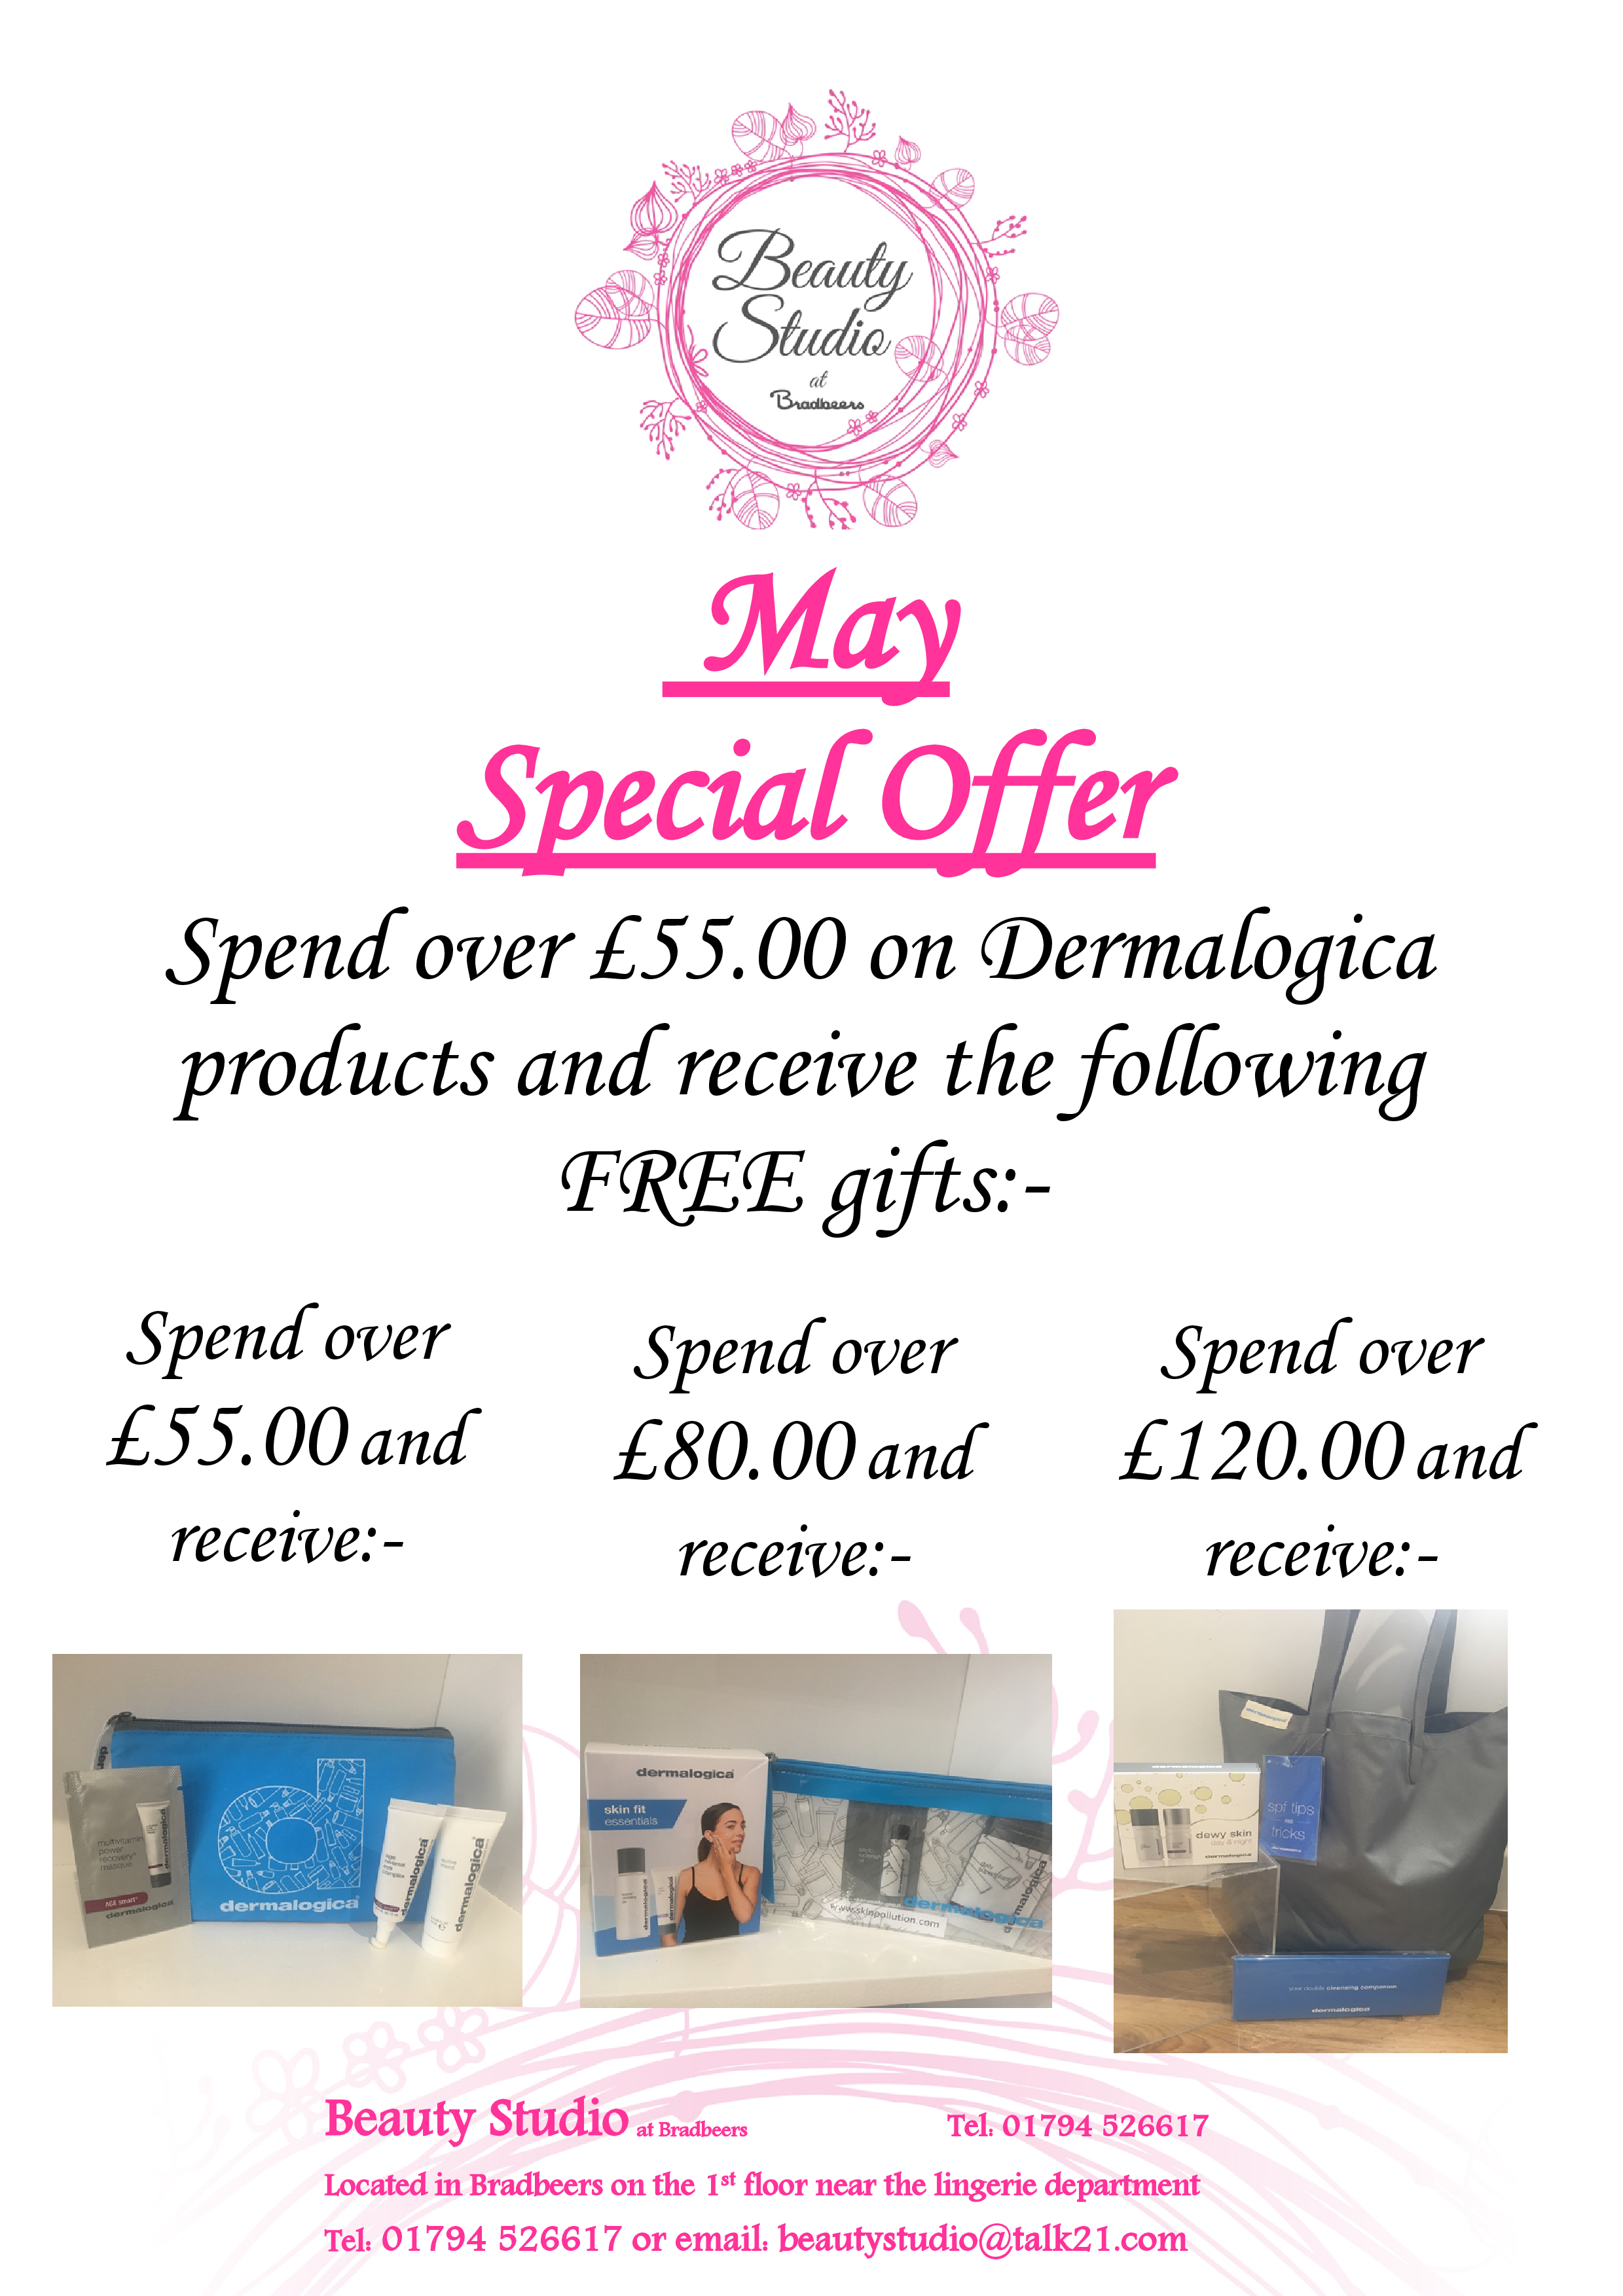 5 May Special Offer